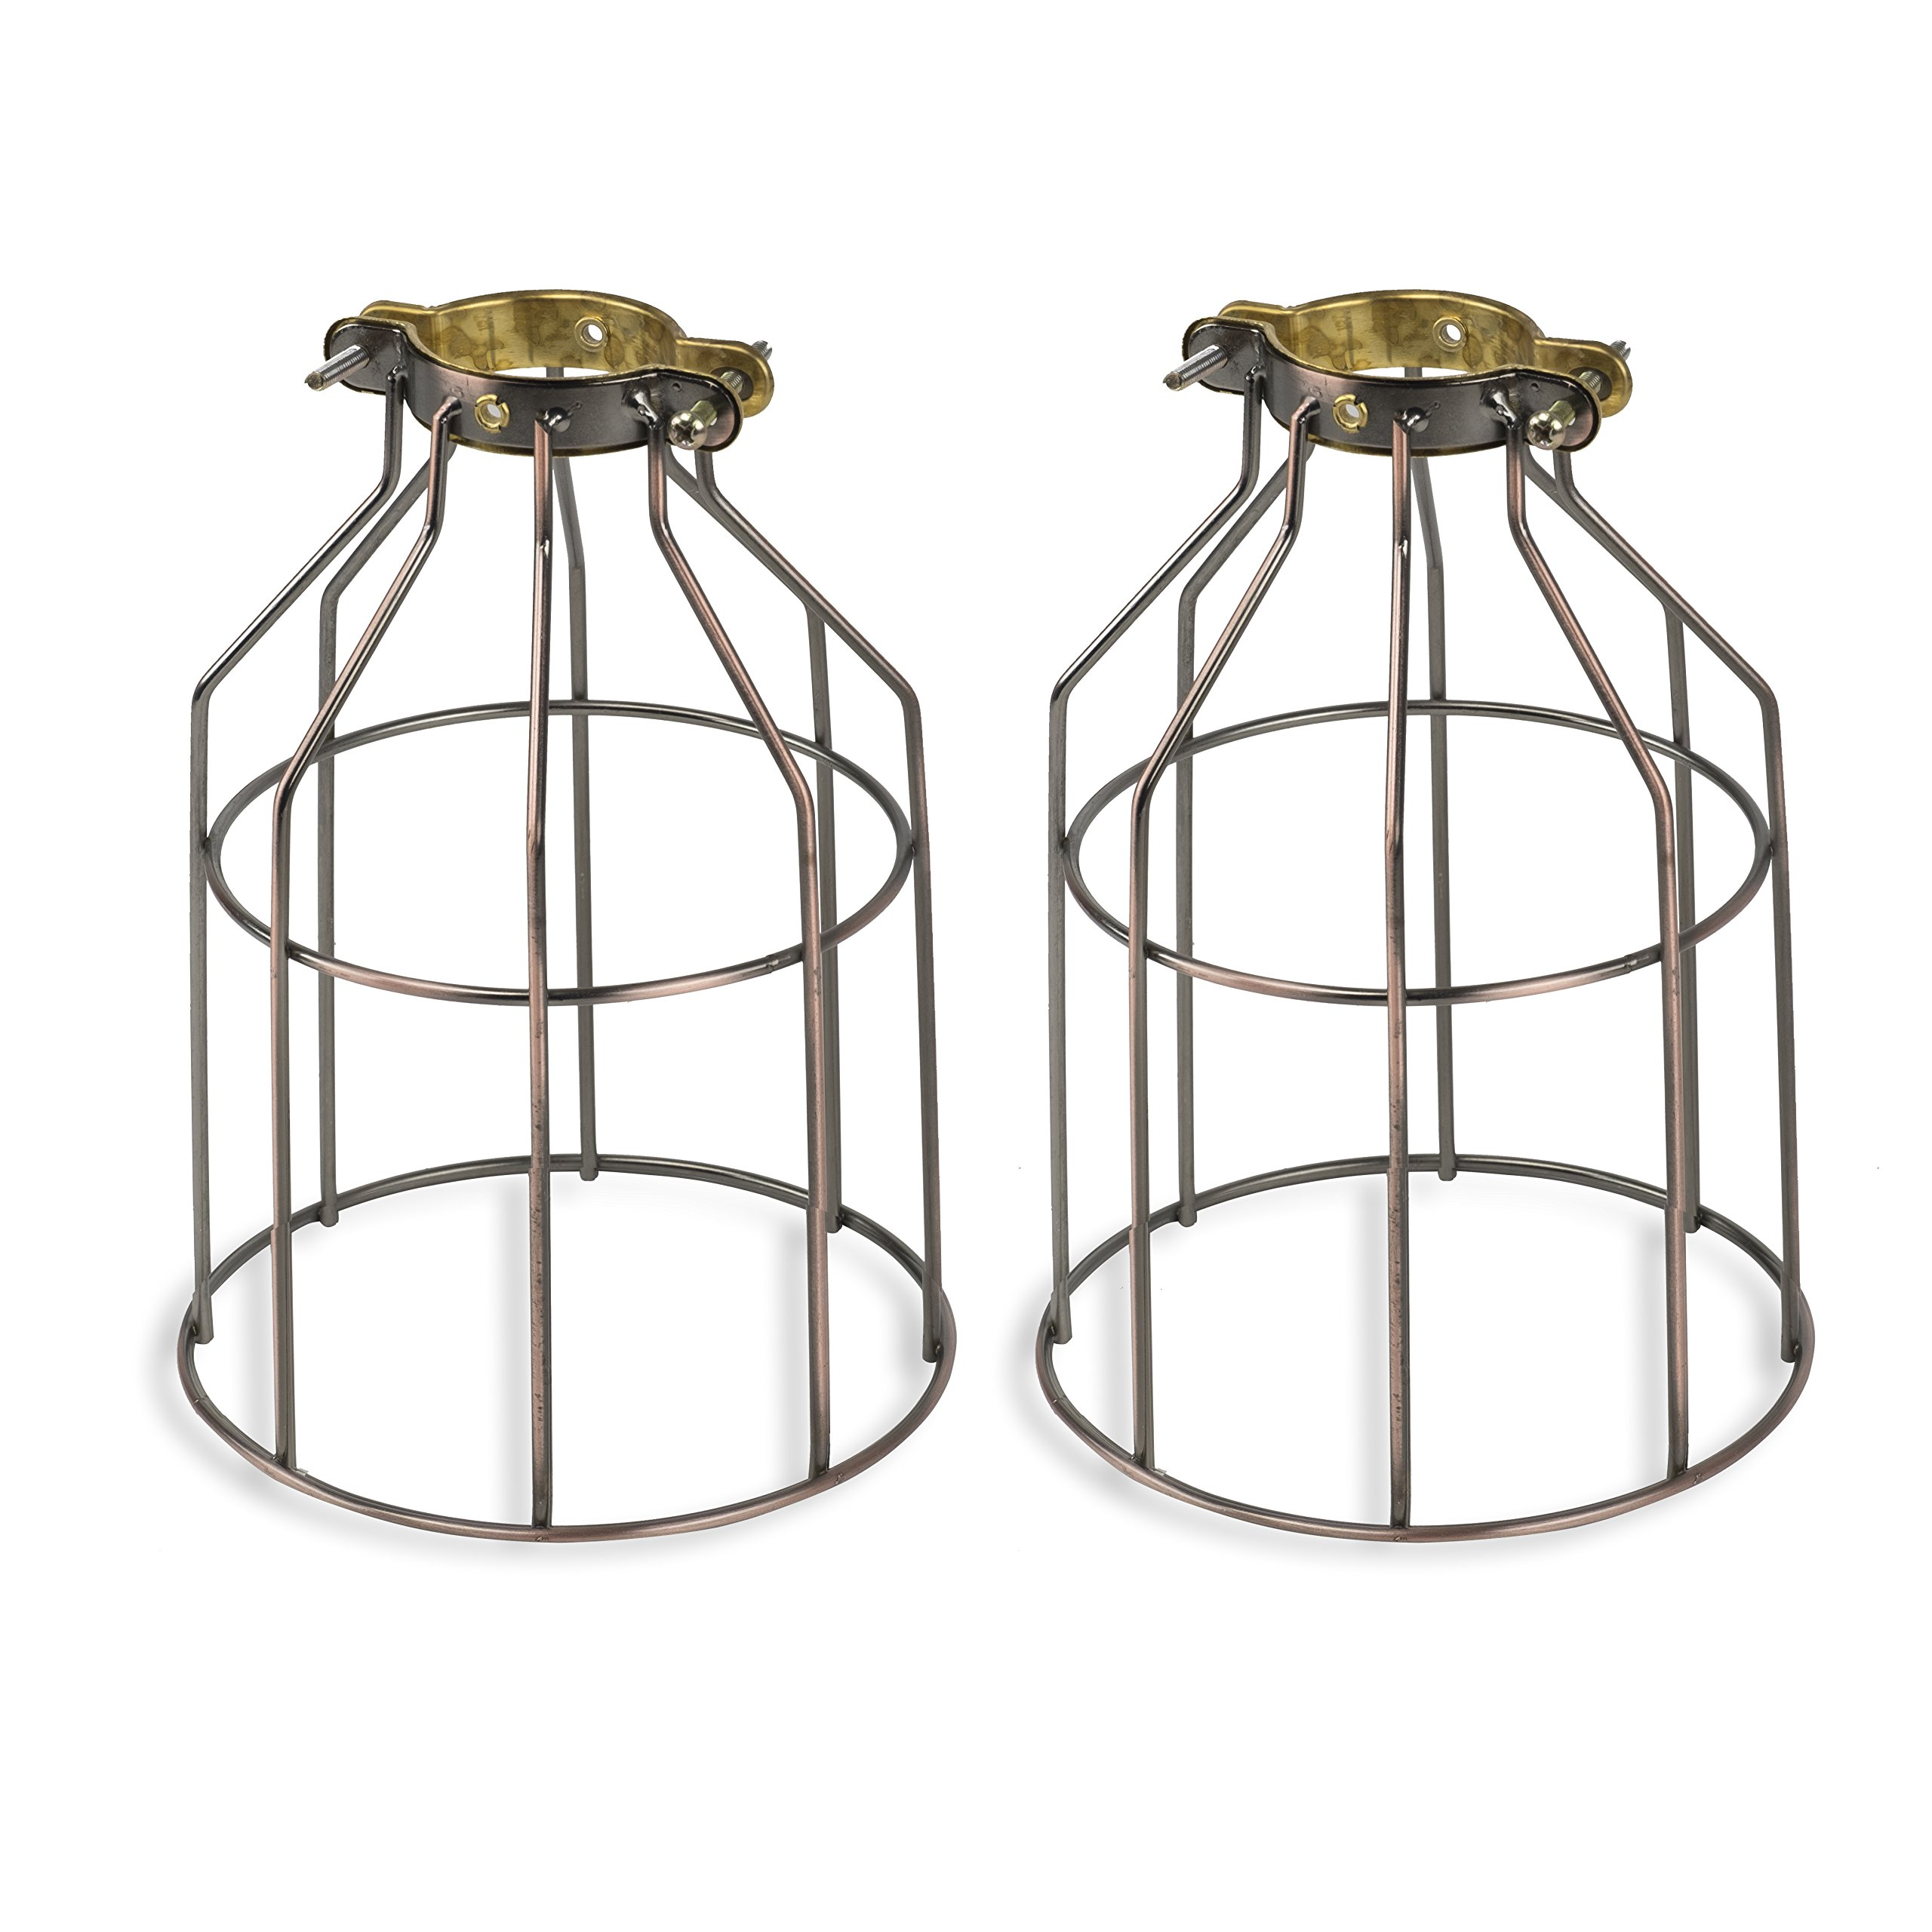 Set of 2 Industrial Vintage Style Top Light Cage for Pendant Light Lamps (Oil Robbed)